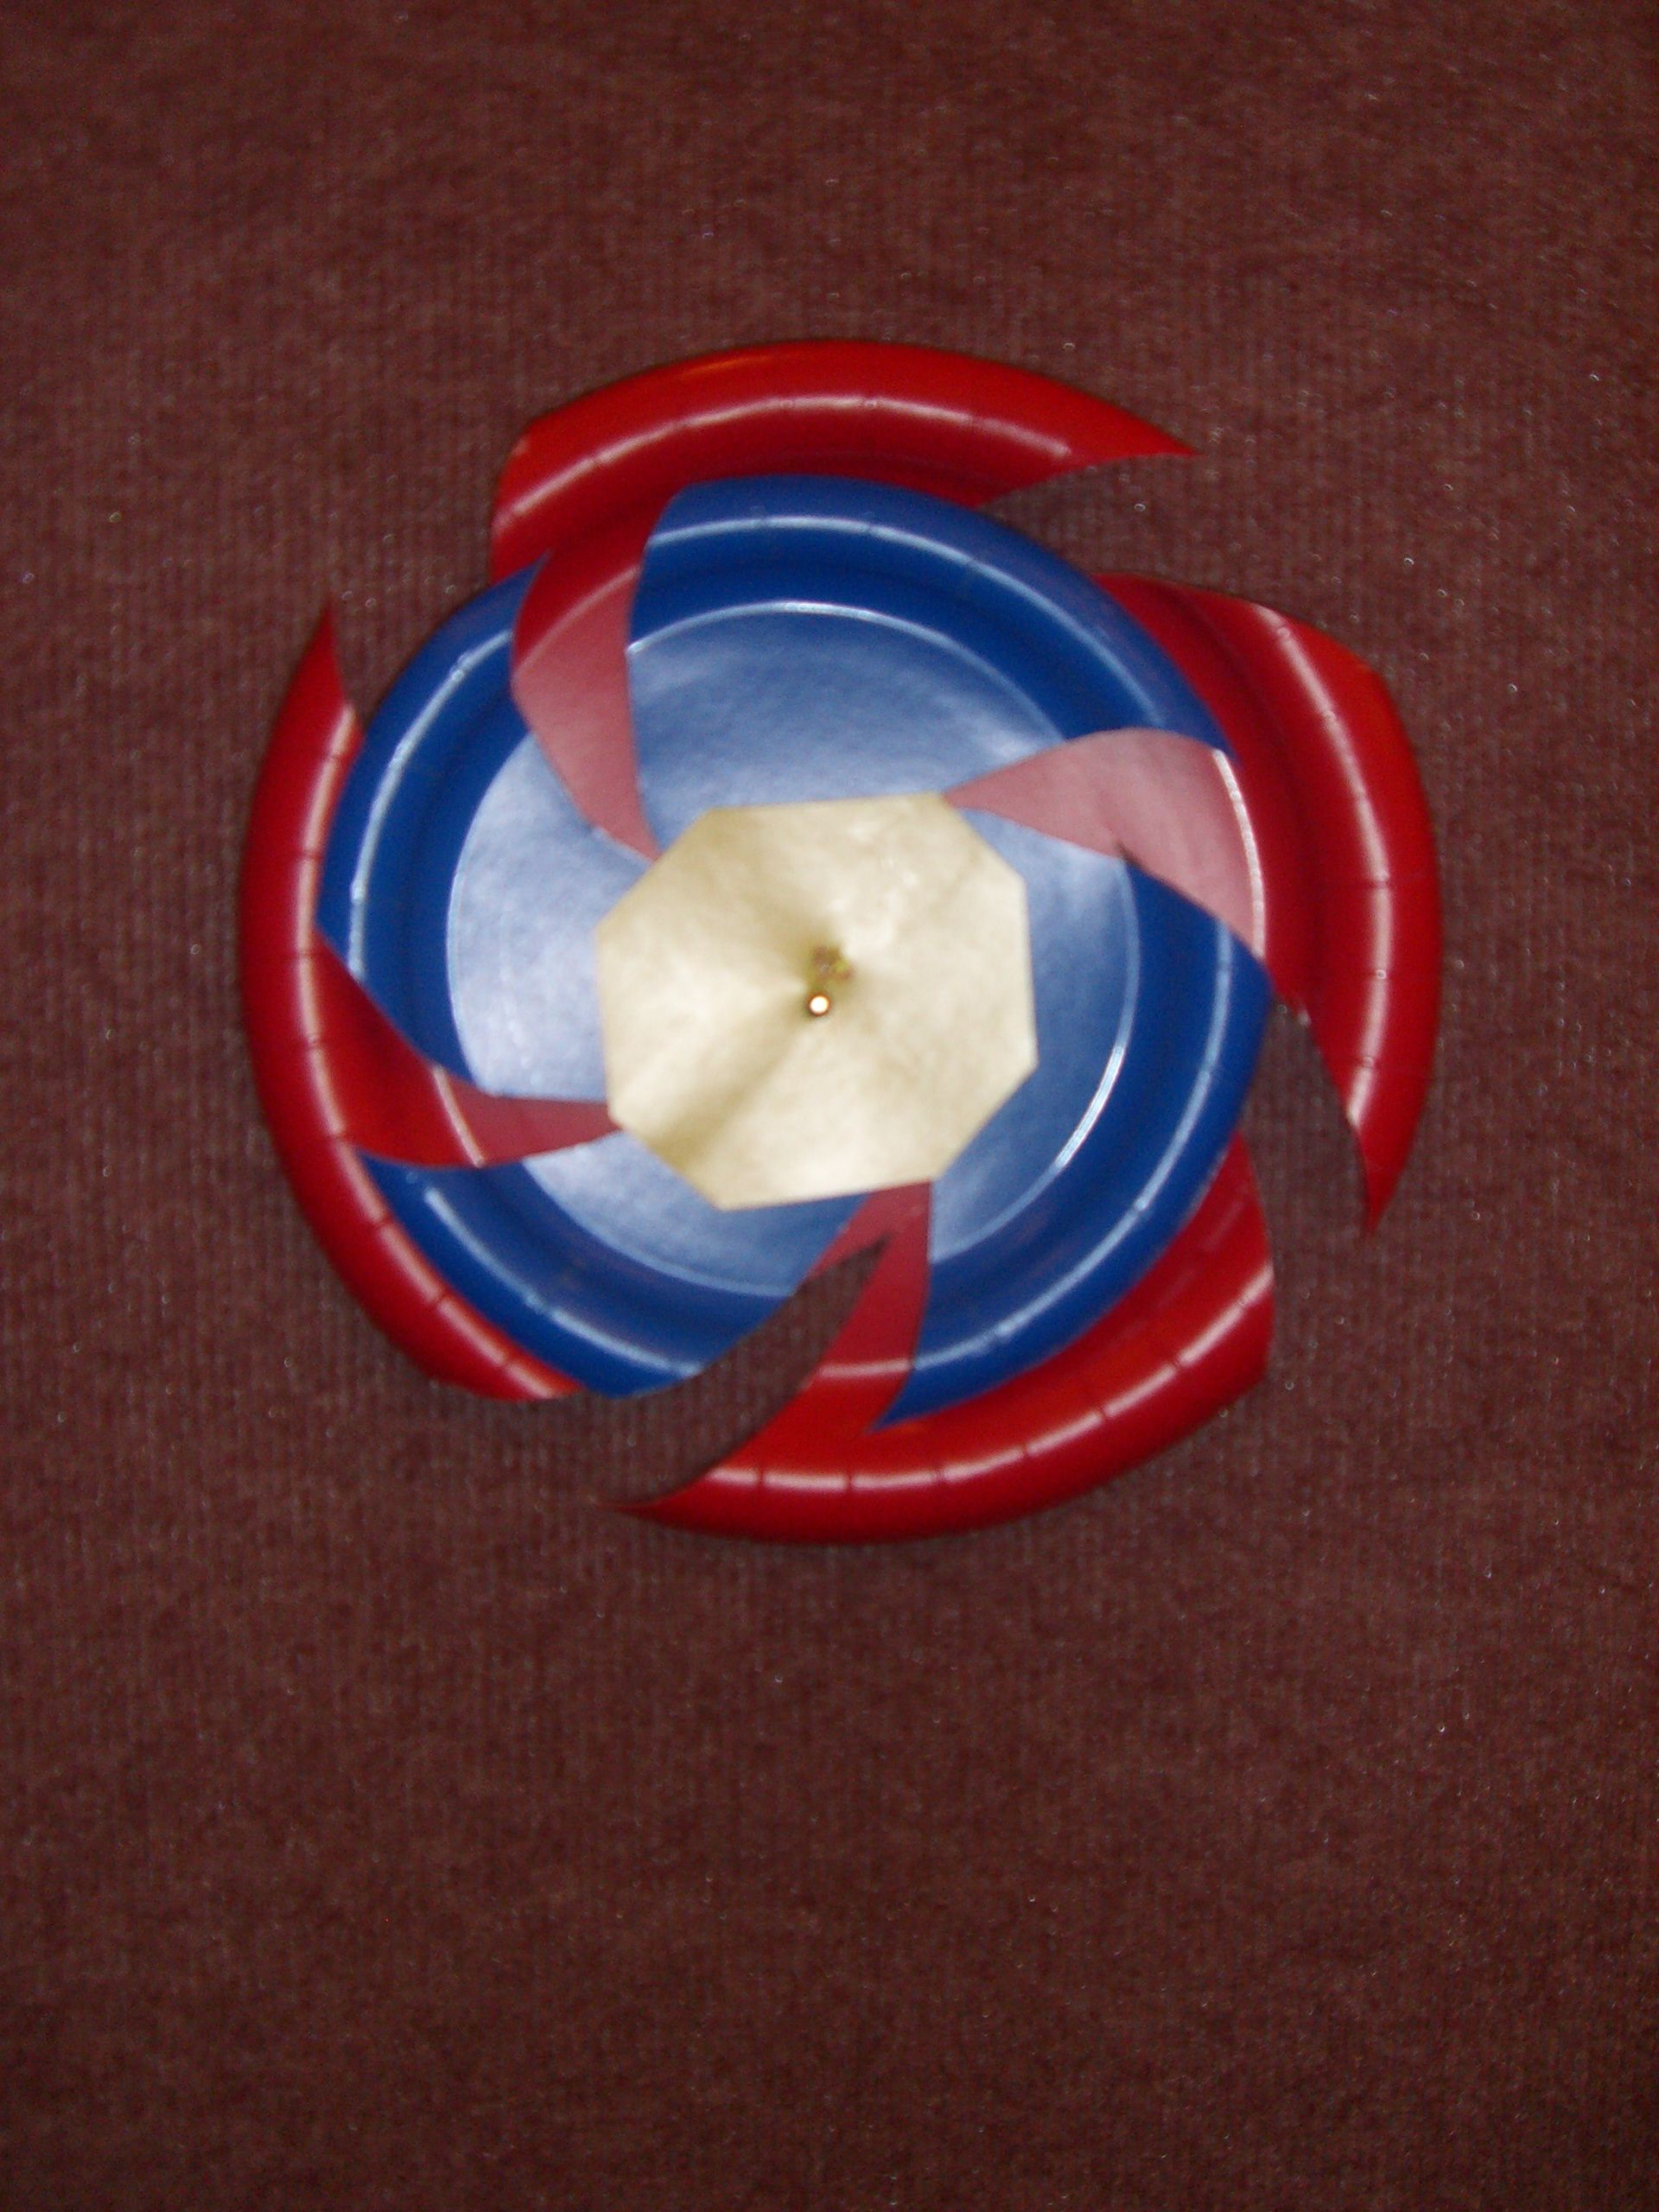 Beyblade wall decorations i made out of paper plates from for Anime beyblade cake topper decoration set